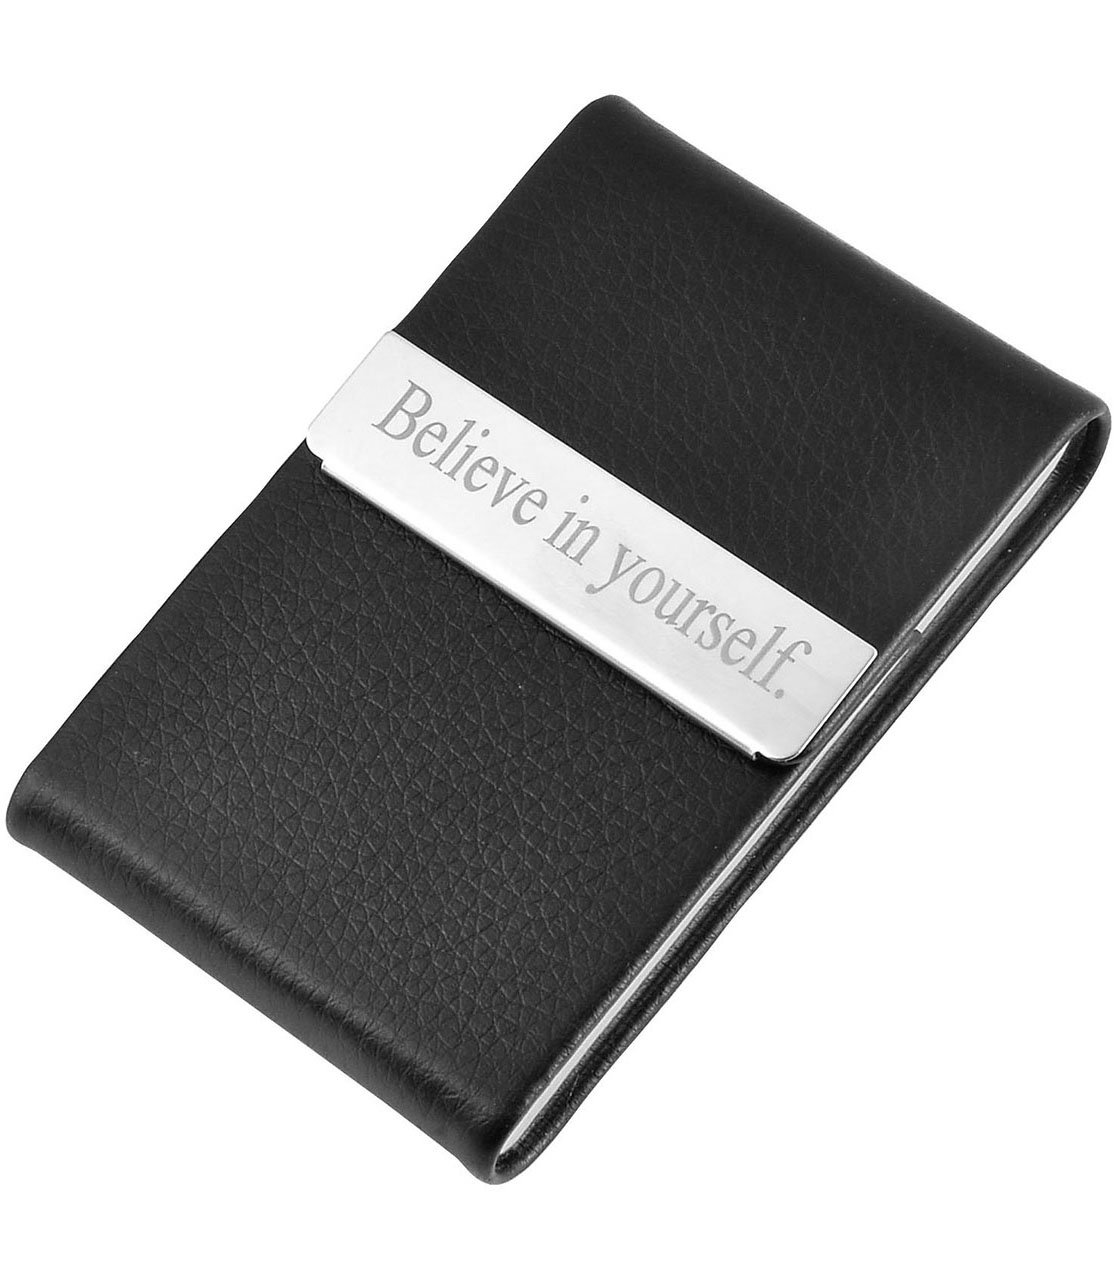 Ayliss Custom Engraved Business Card Holder Personalized Text Card Case,Black-customed